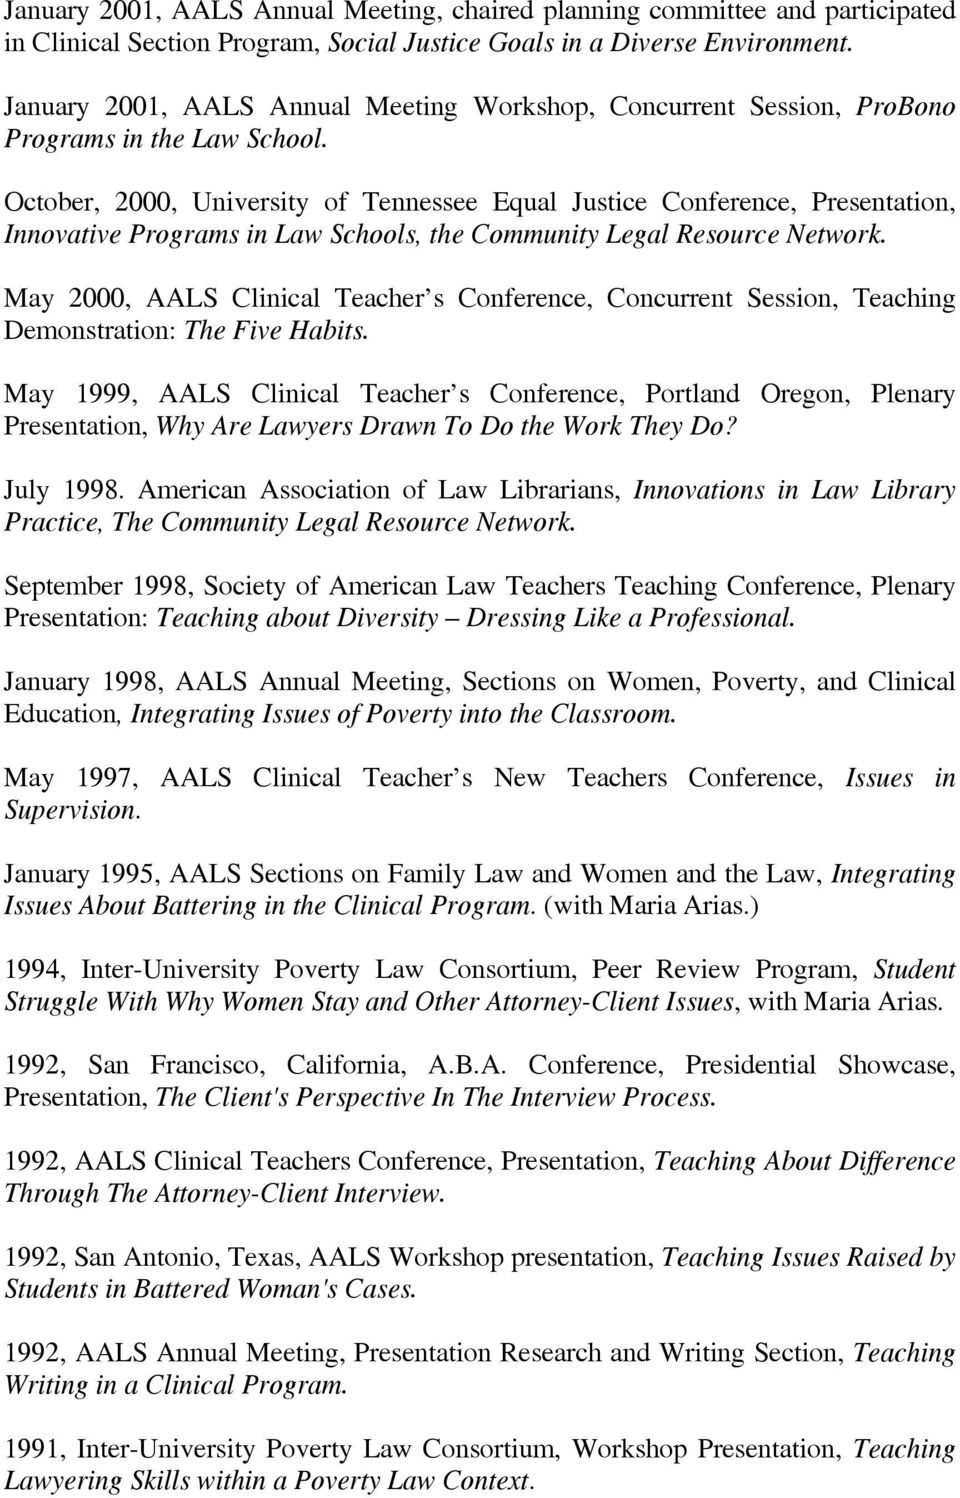 October, 2000, University of Tennessee Equal Justice Conference, Presentation, Innovative Programs in Law Schools, the Community Legal Resource Network.